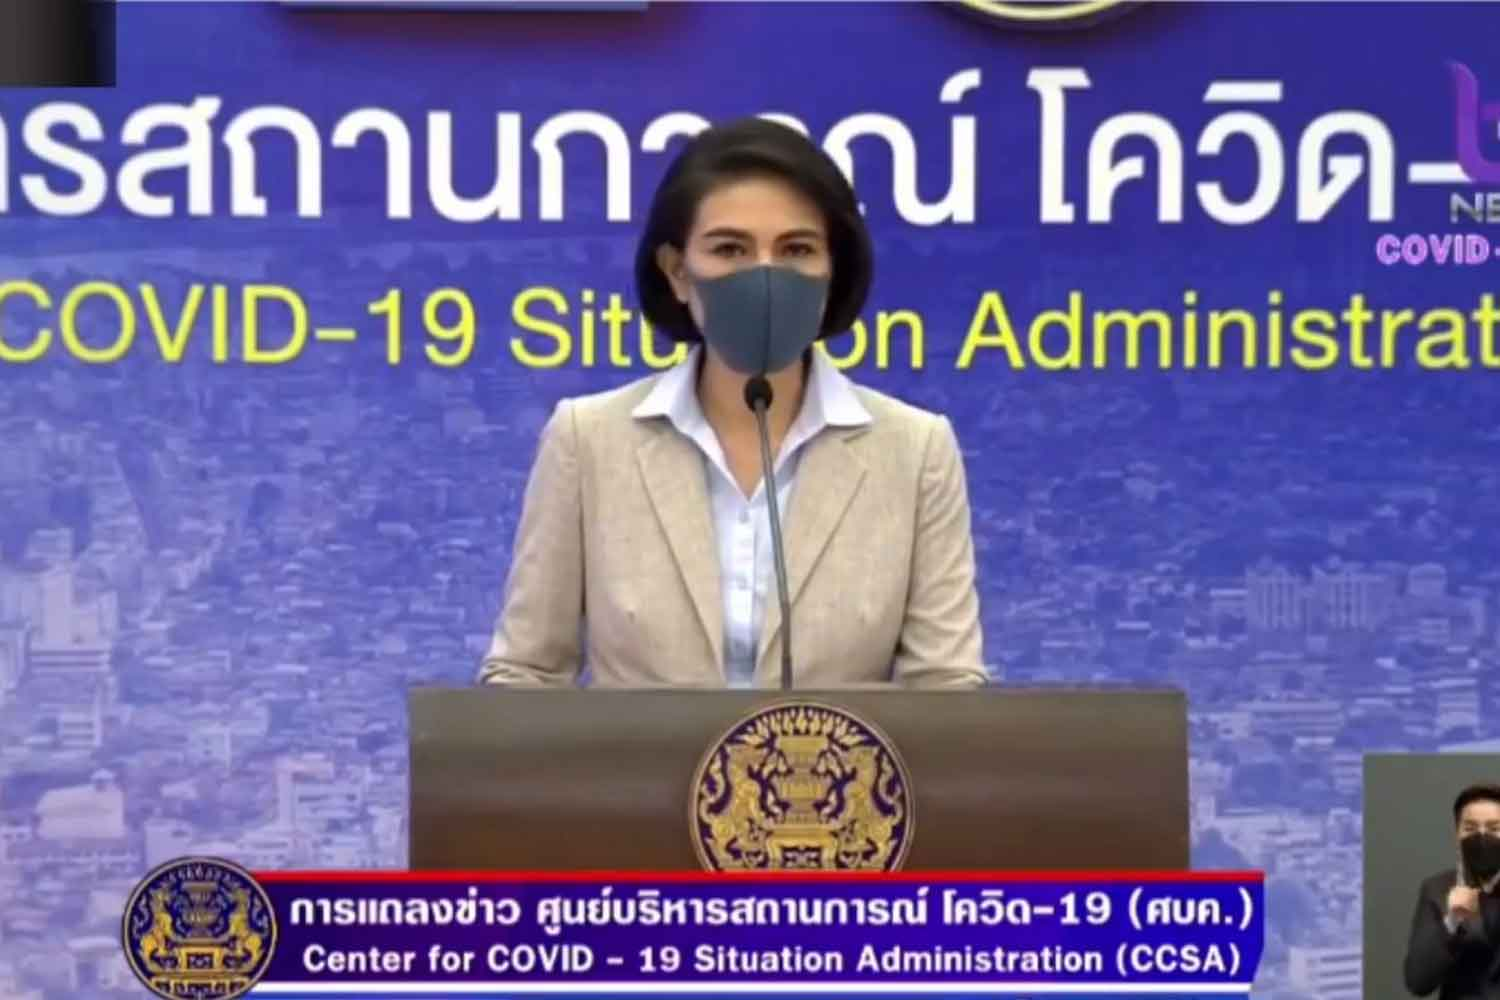 Testing in Siam Square found Covid infections in 7.35% of the 734 people screened, CCSA spokeswoman Apisamai Srirangson said at a briefing on Friday at Government House in Bangkok. (Screenshot)